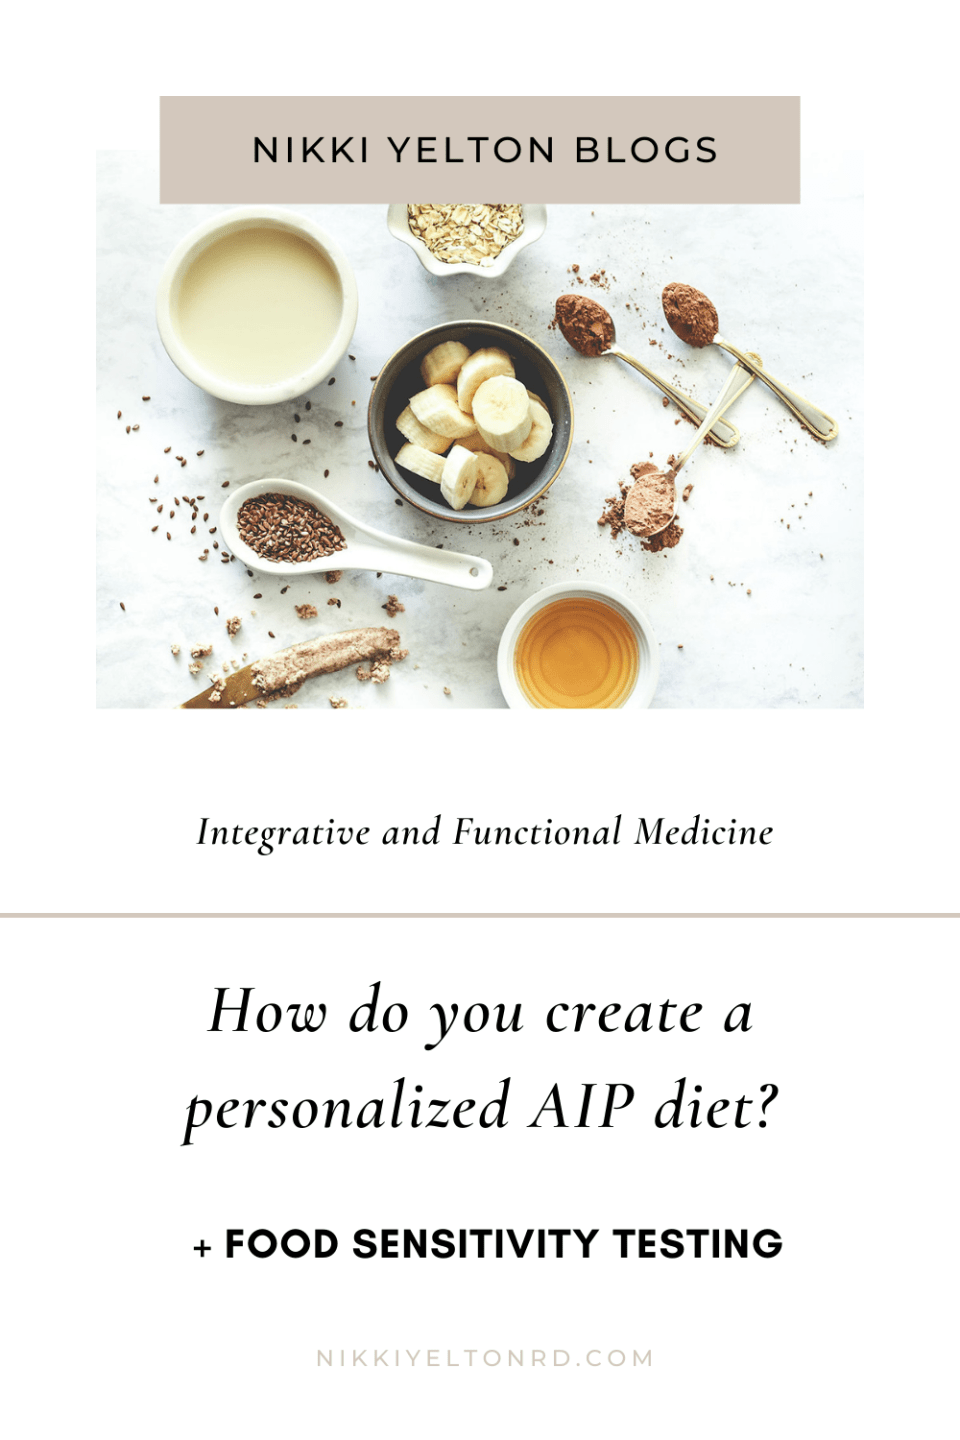 The functional medicine tests and food elimination phases involved in personalizing the autoimmune paleo protocol